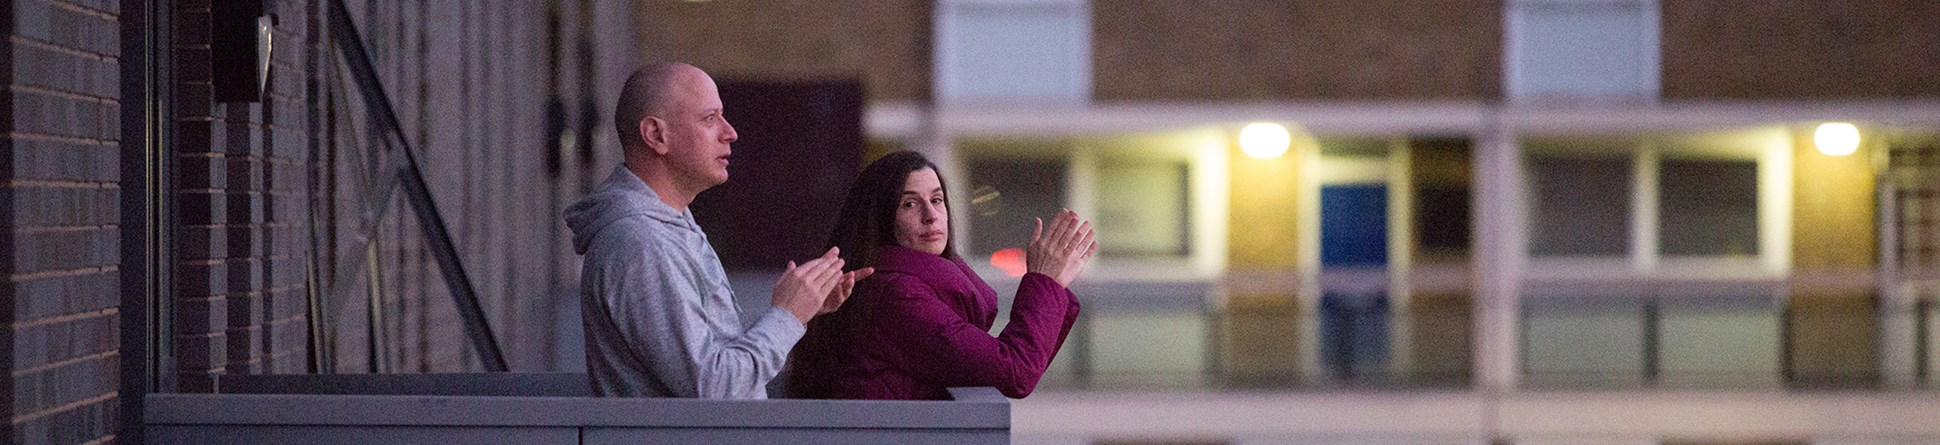 Man and woman standing on the balcony of a block of flats clapping their hands